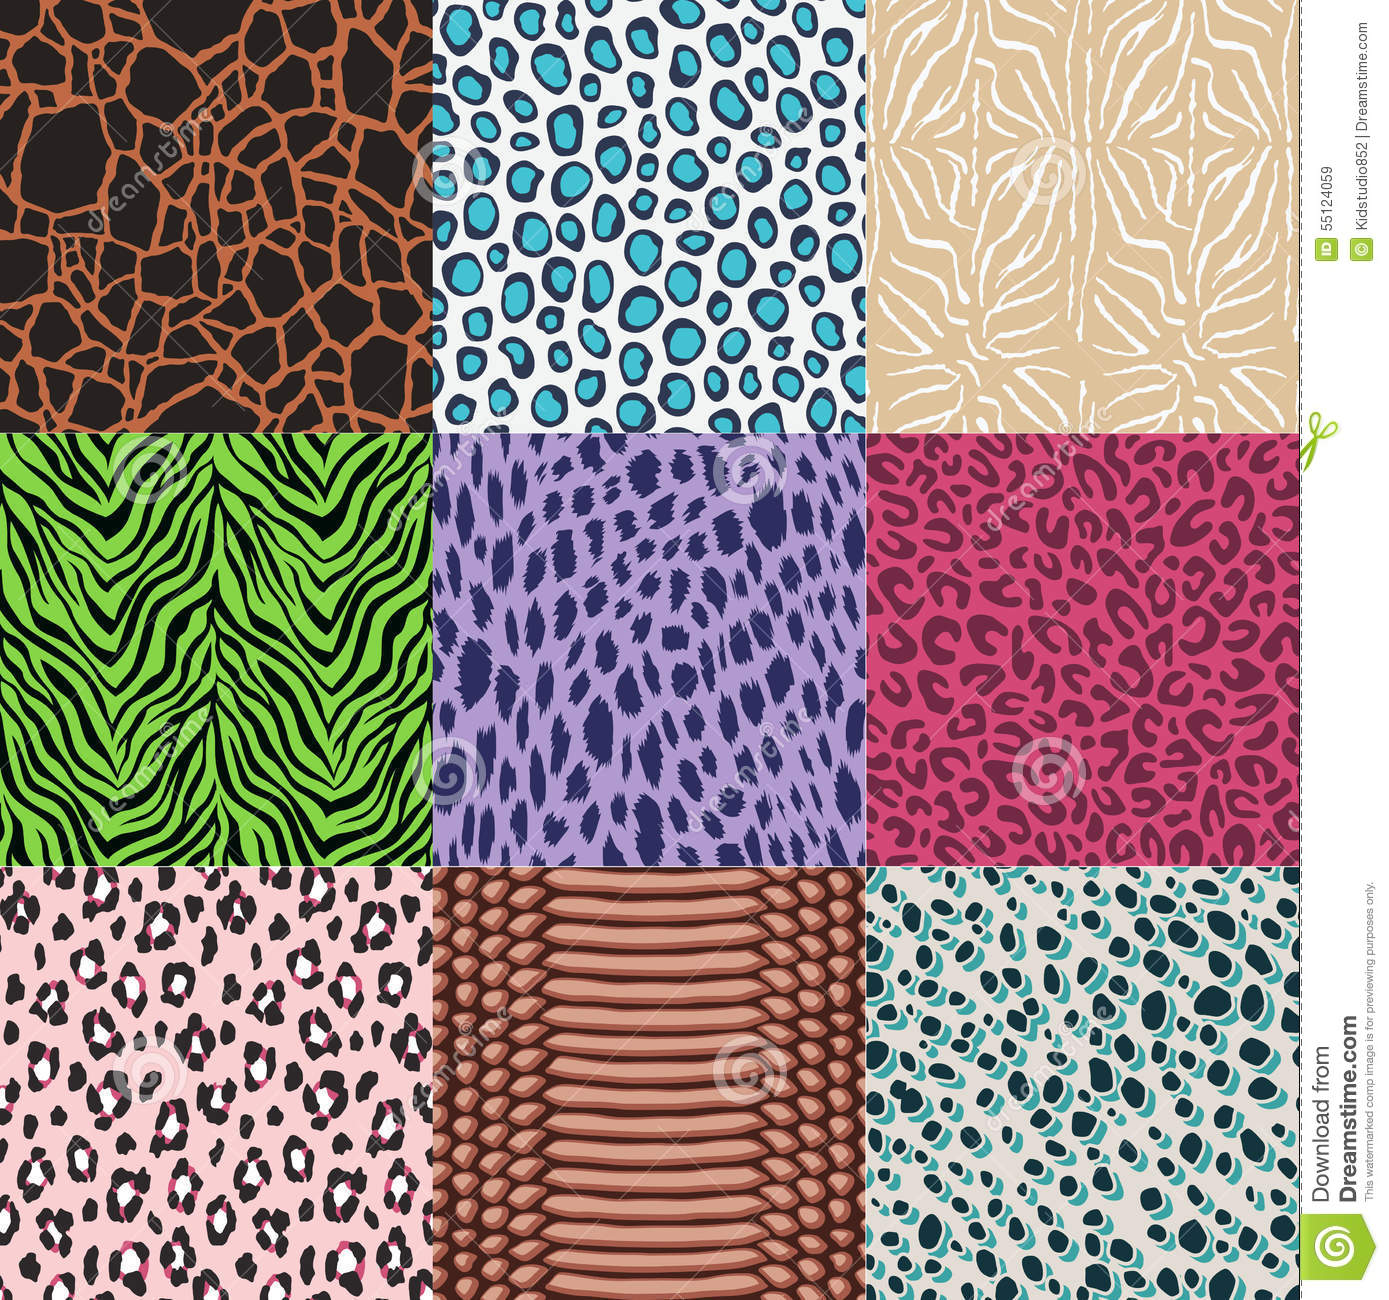 animal skin patterns seamless - photo #42